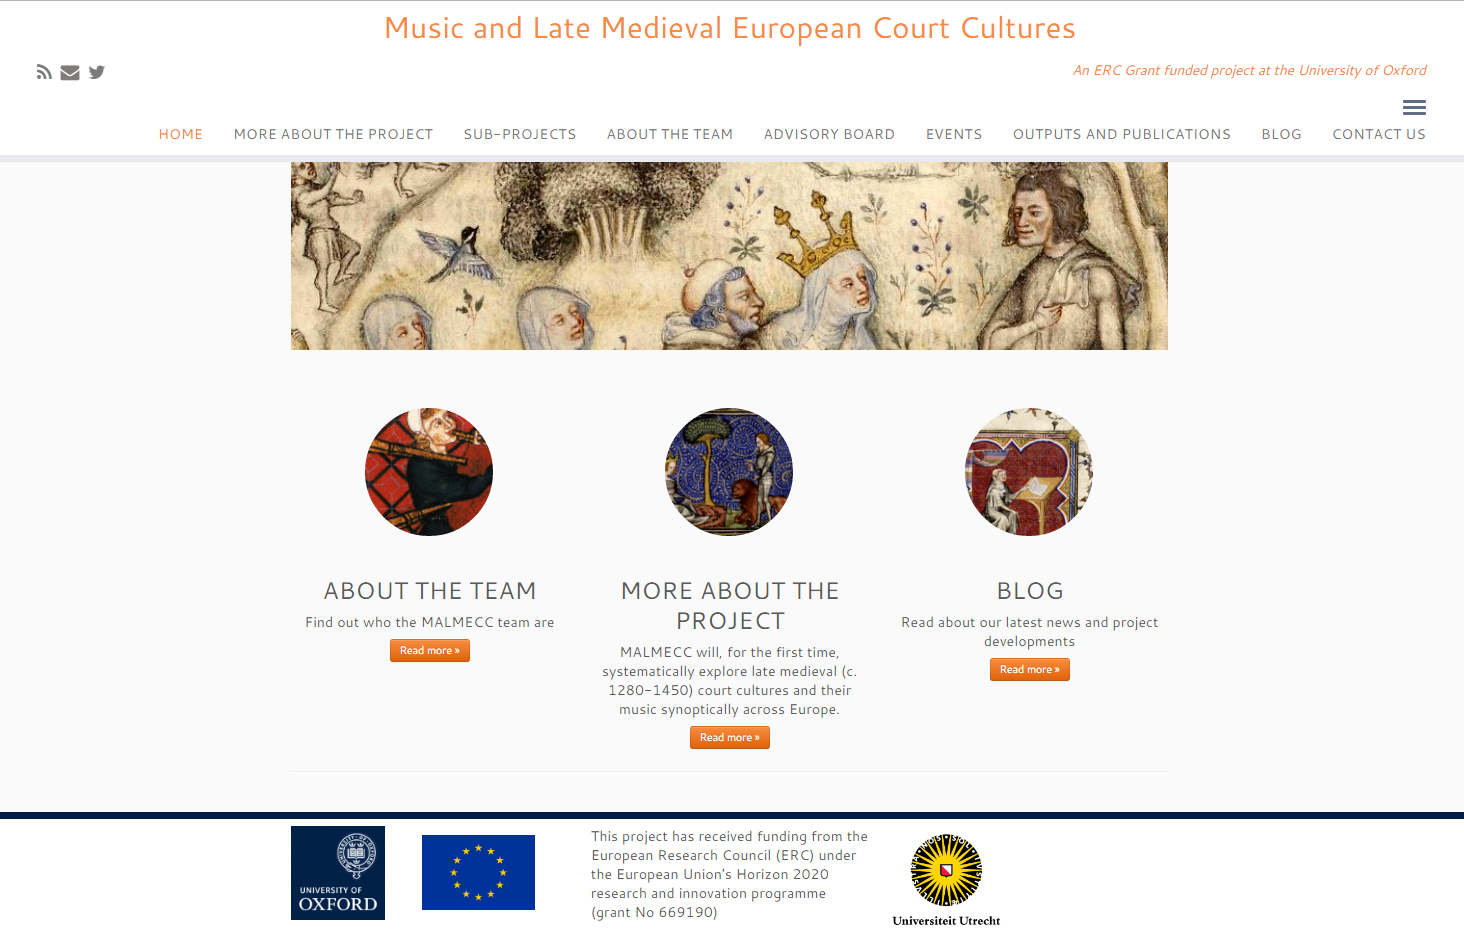 oxford, muysic, medieval, european, court, culture